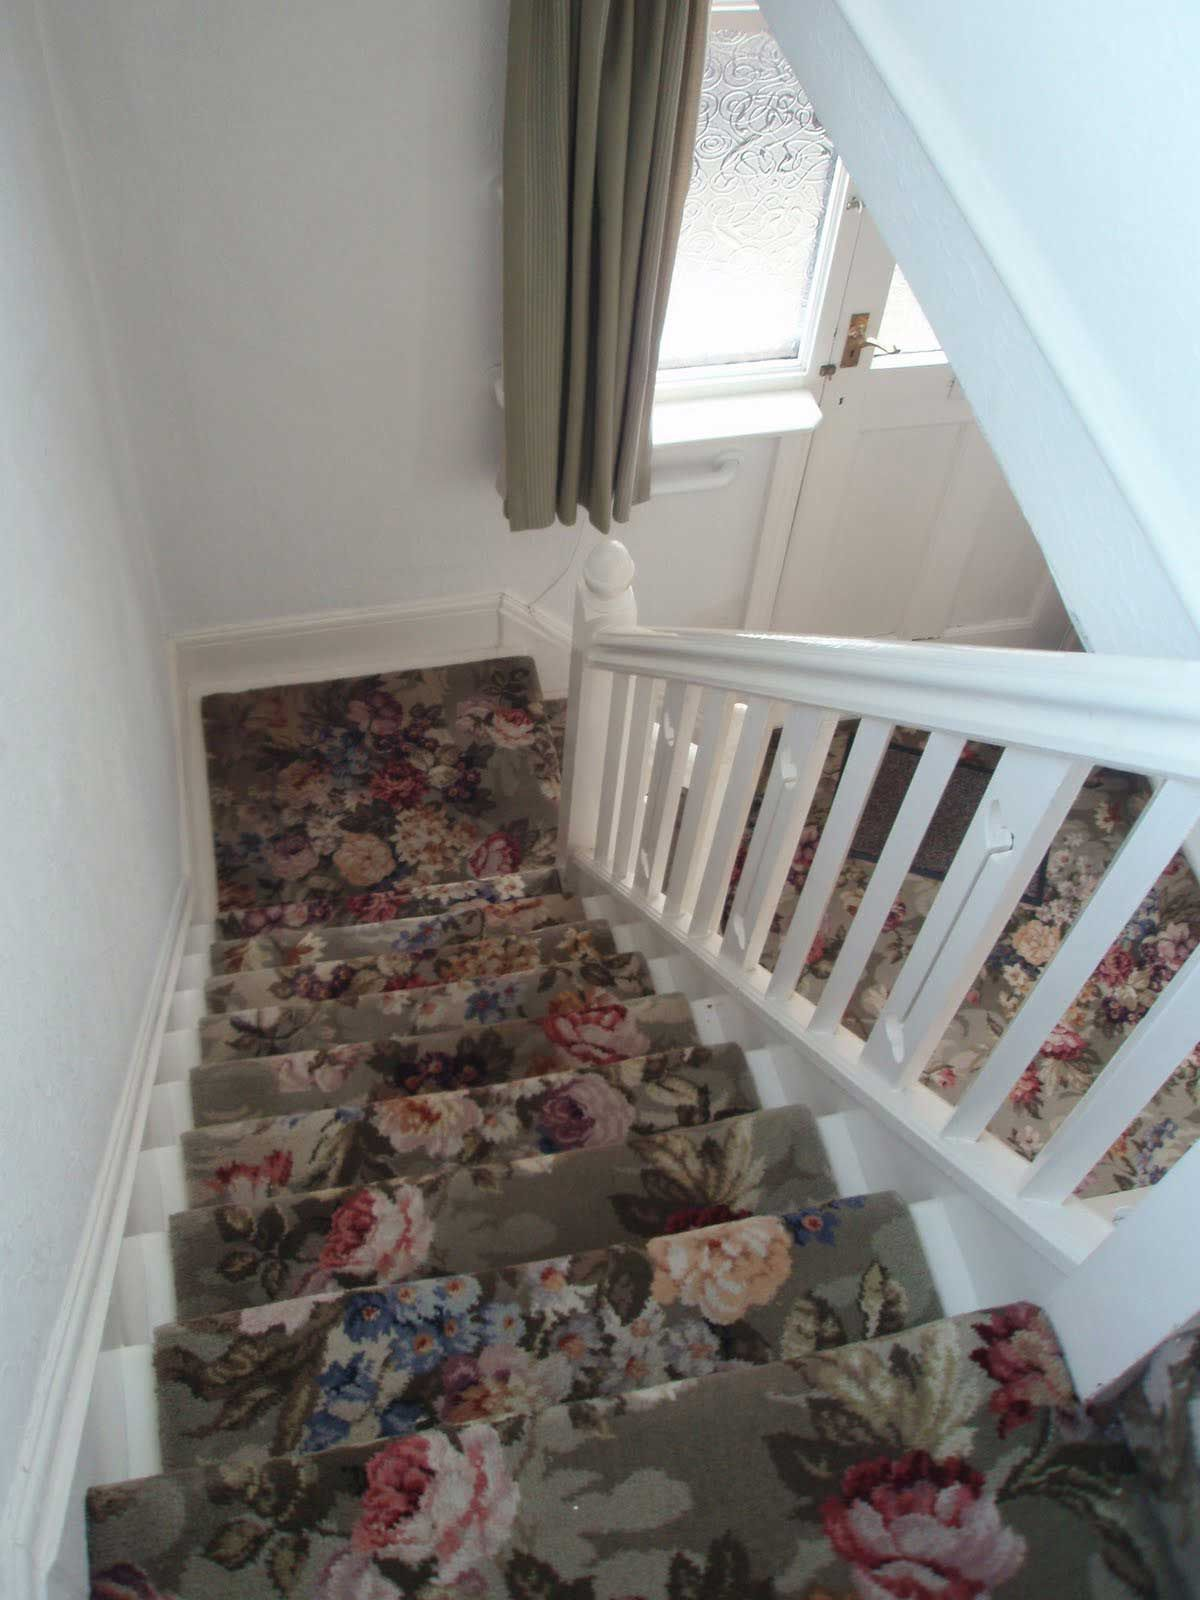 carpet pattern background home. beautiful patterned carpet runner for stairs with flowers pattern design background home